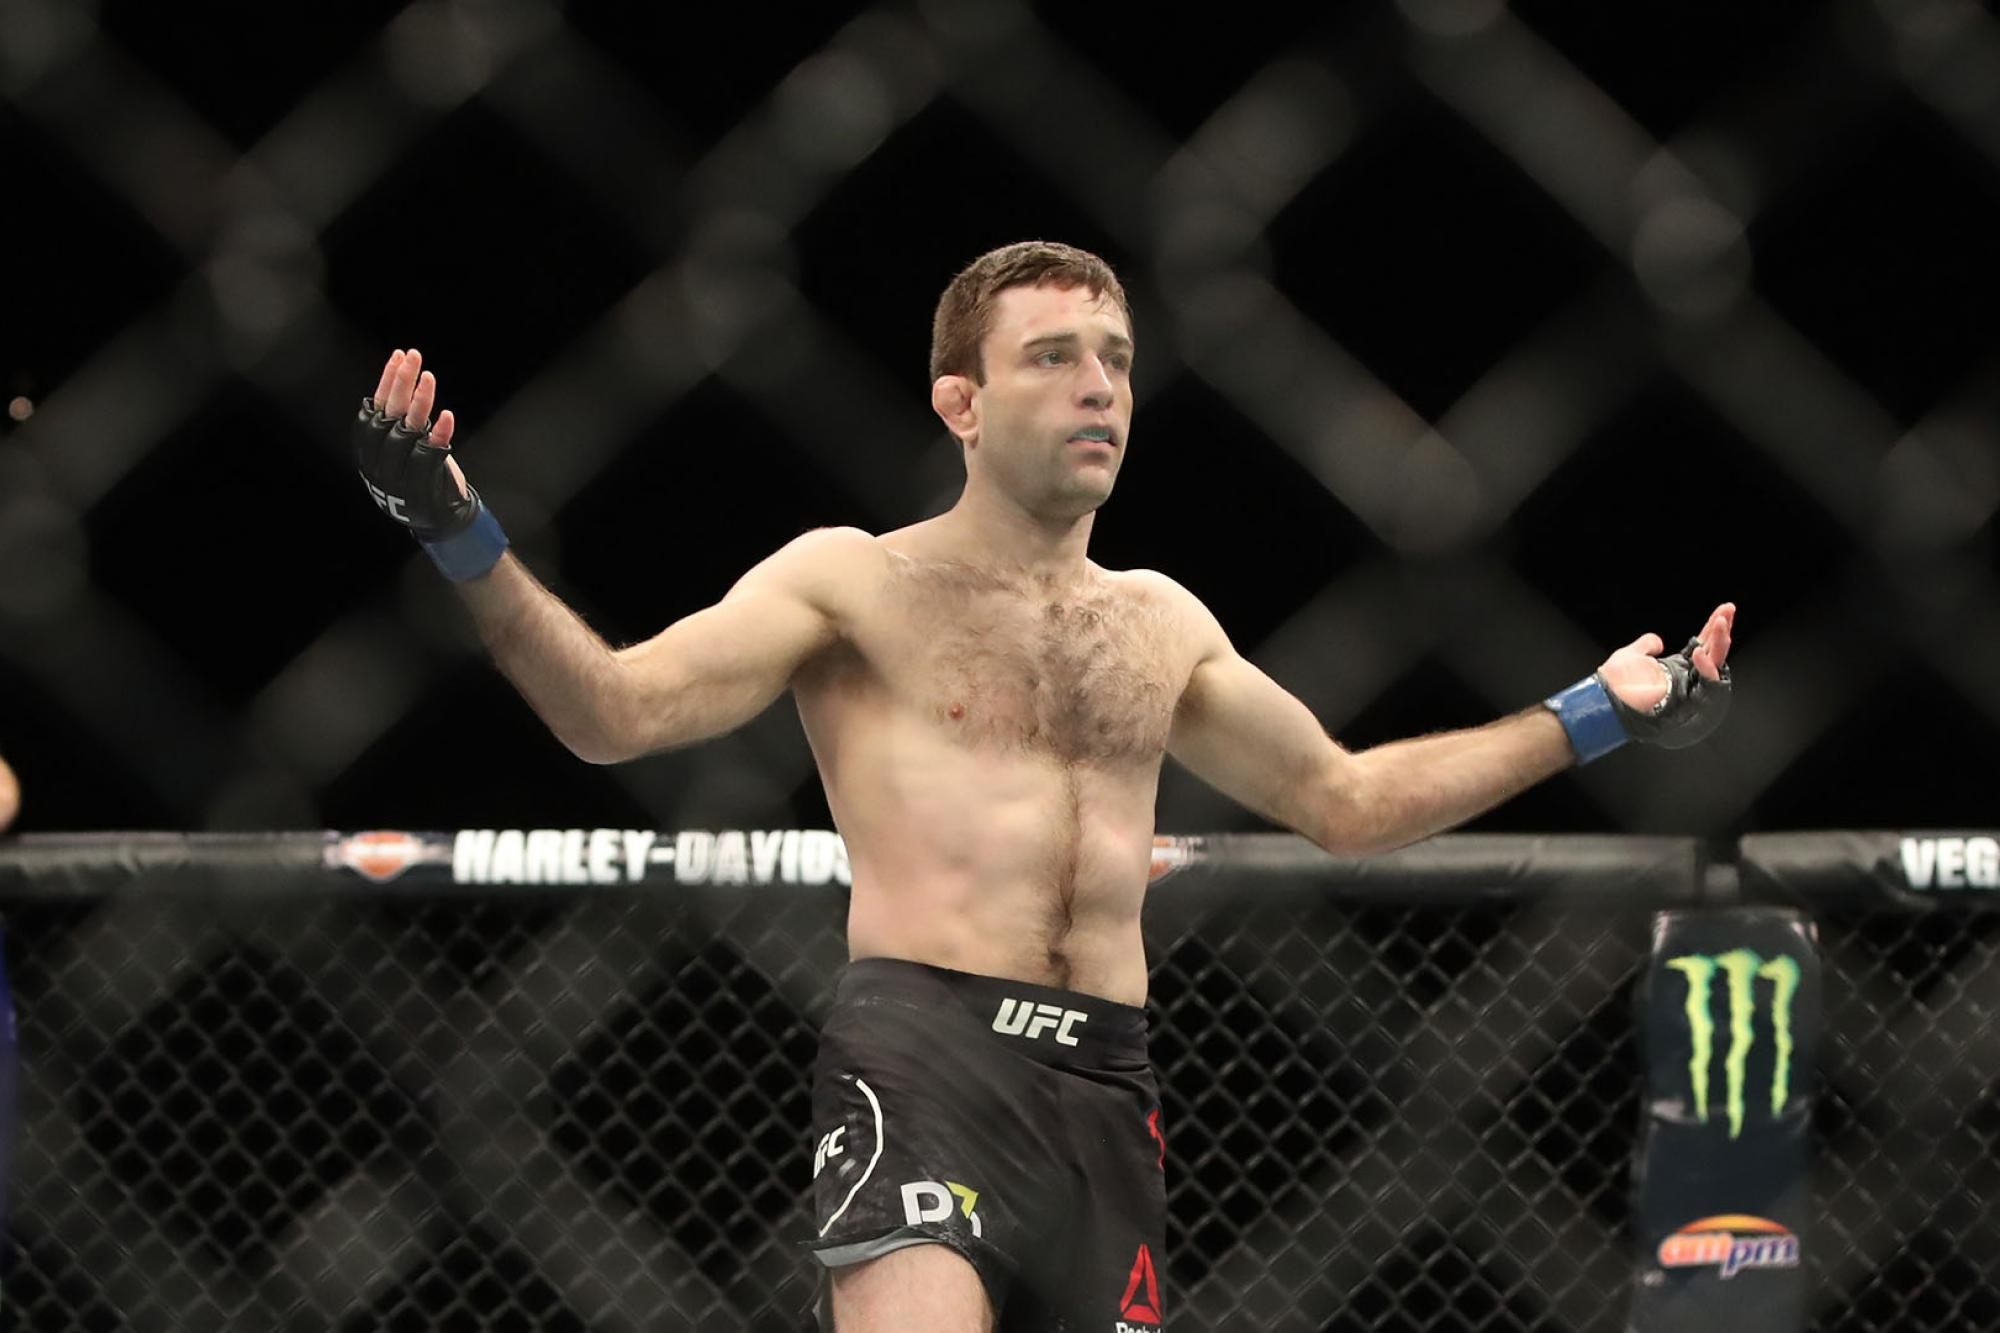 Watch: A look at all the 'spinning sh*t' that Ryan Hall threw against Darren Elkins - Ryan Hall